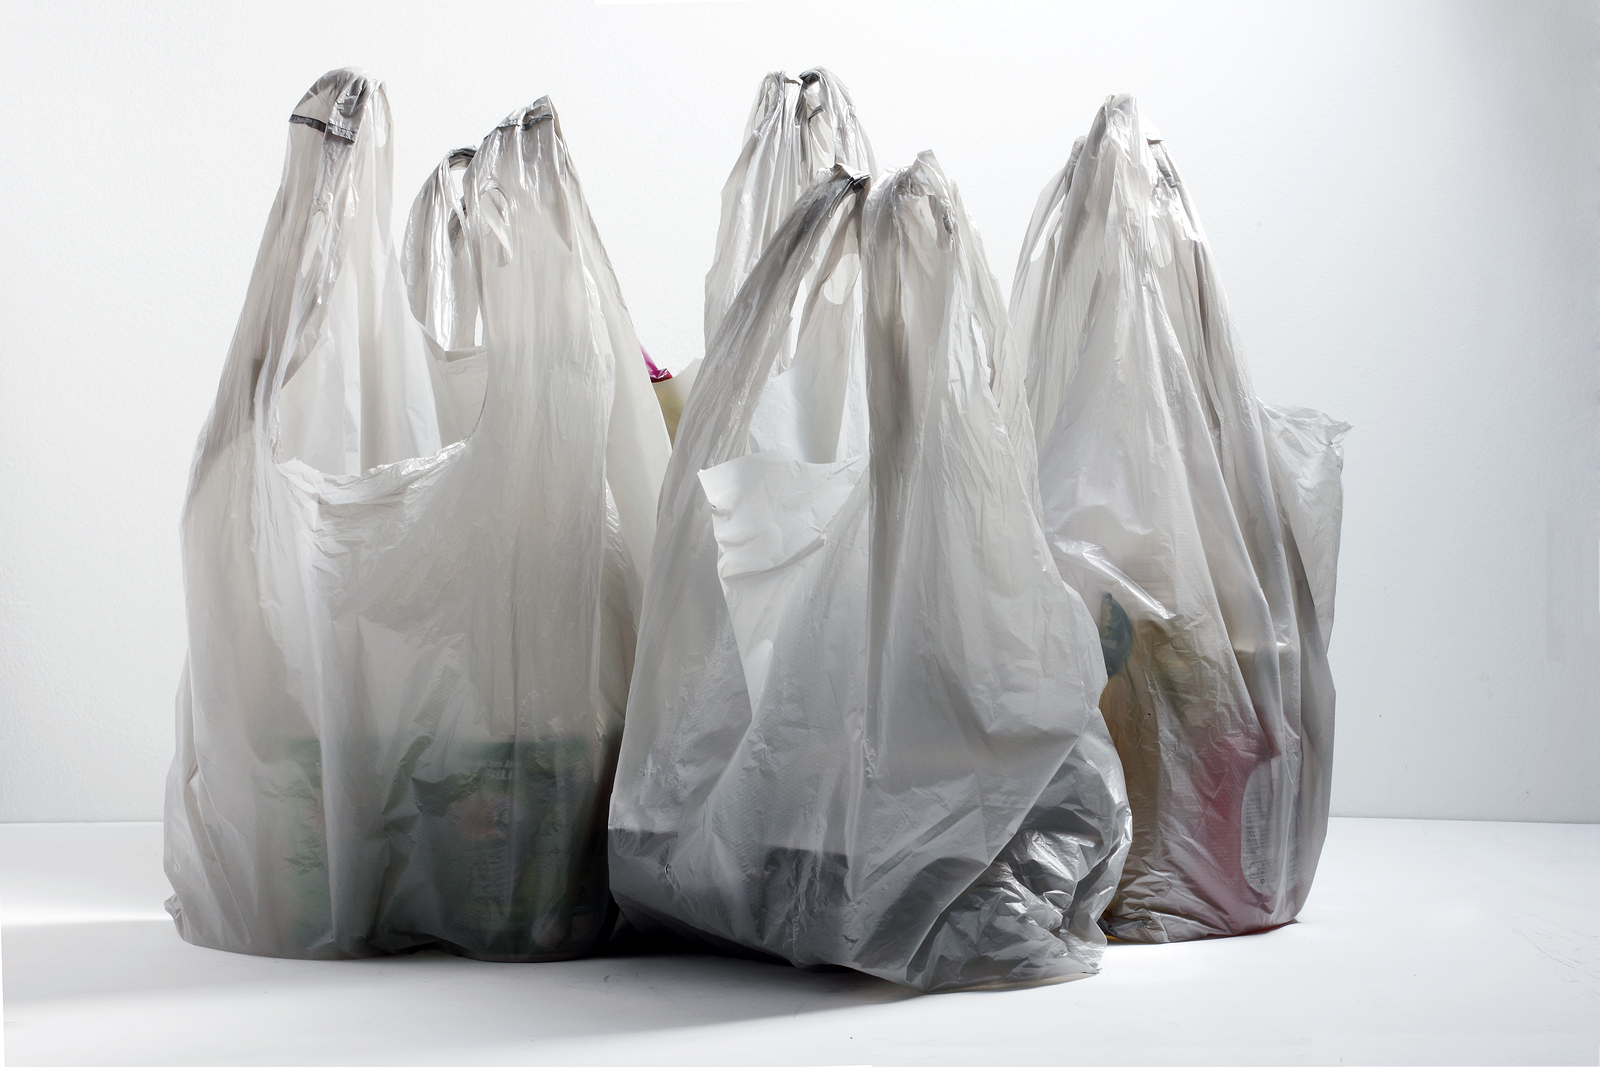 A Proposal In New Jersey Would Prohibit Plastic and Paper ...